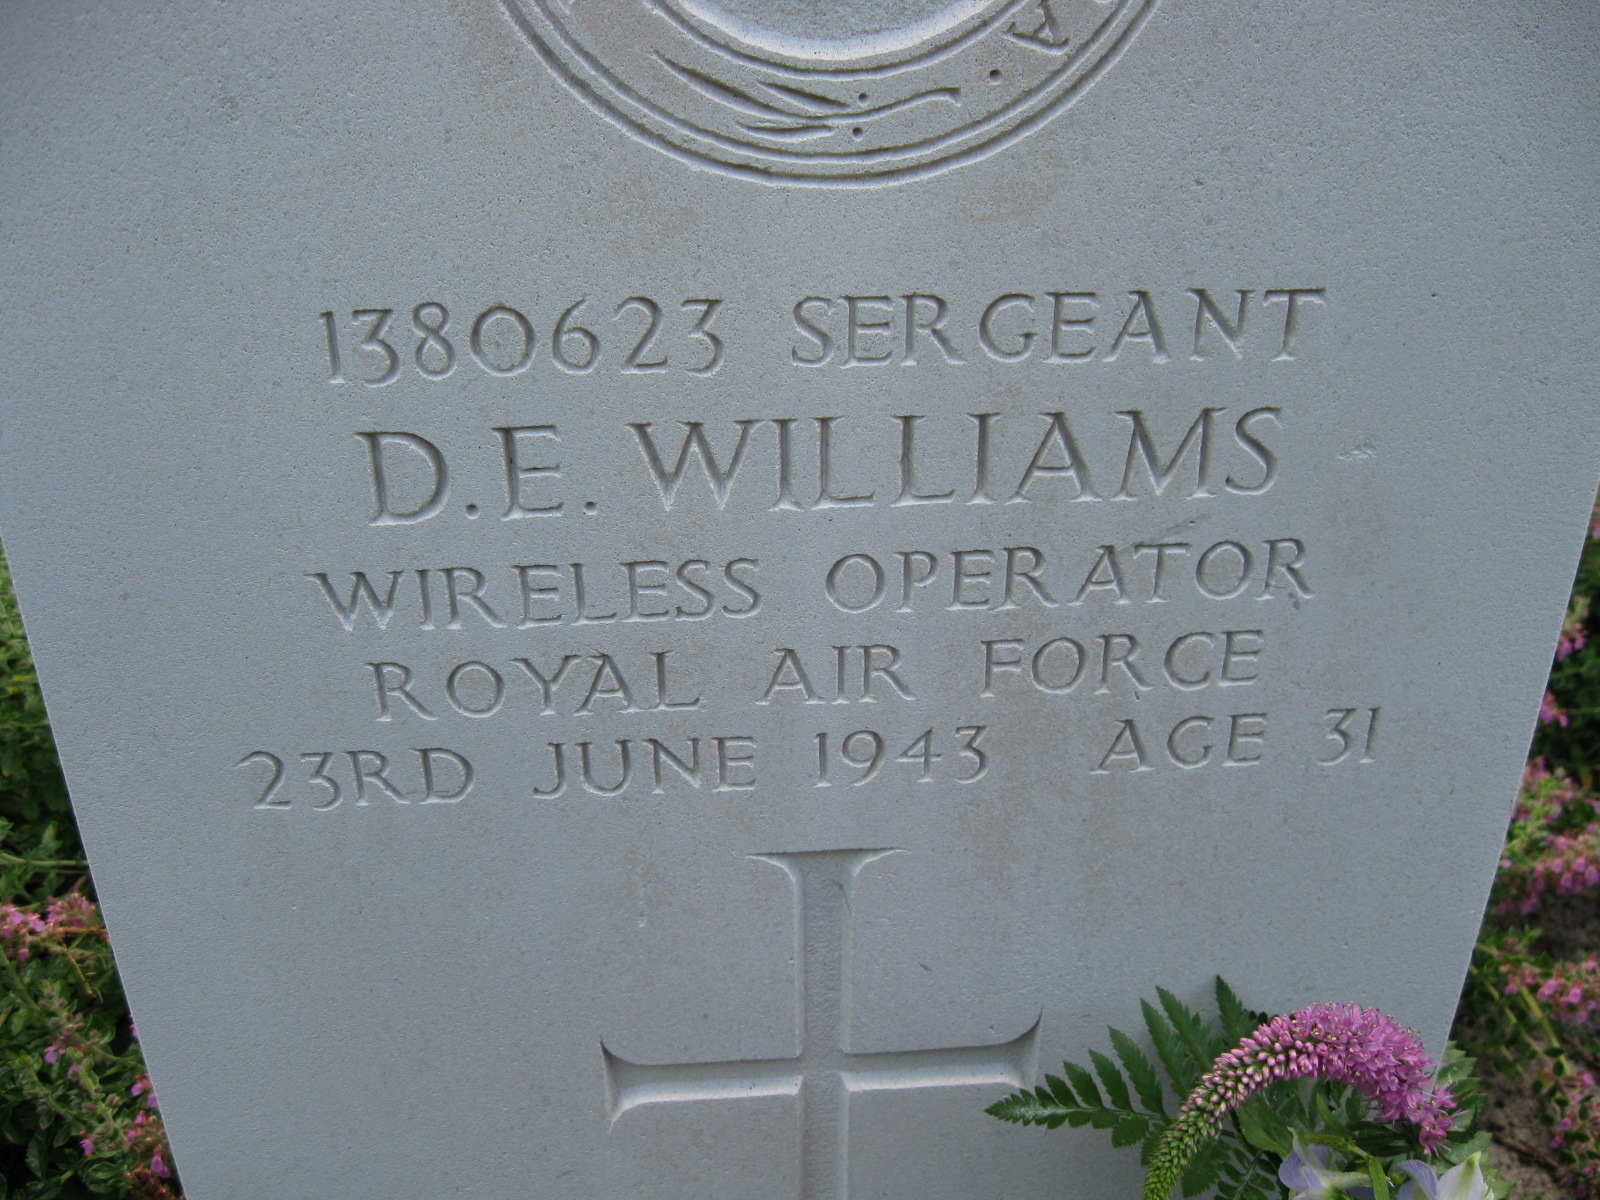 Headstone from recent visit in 2013